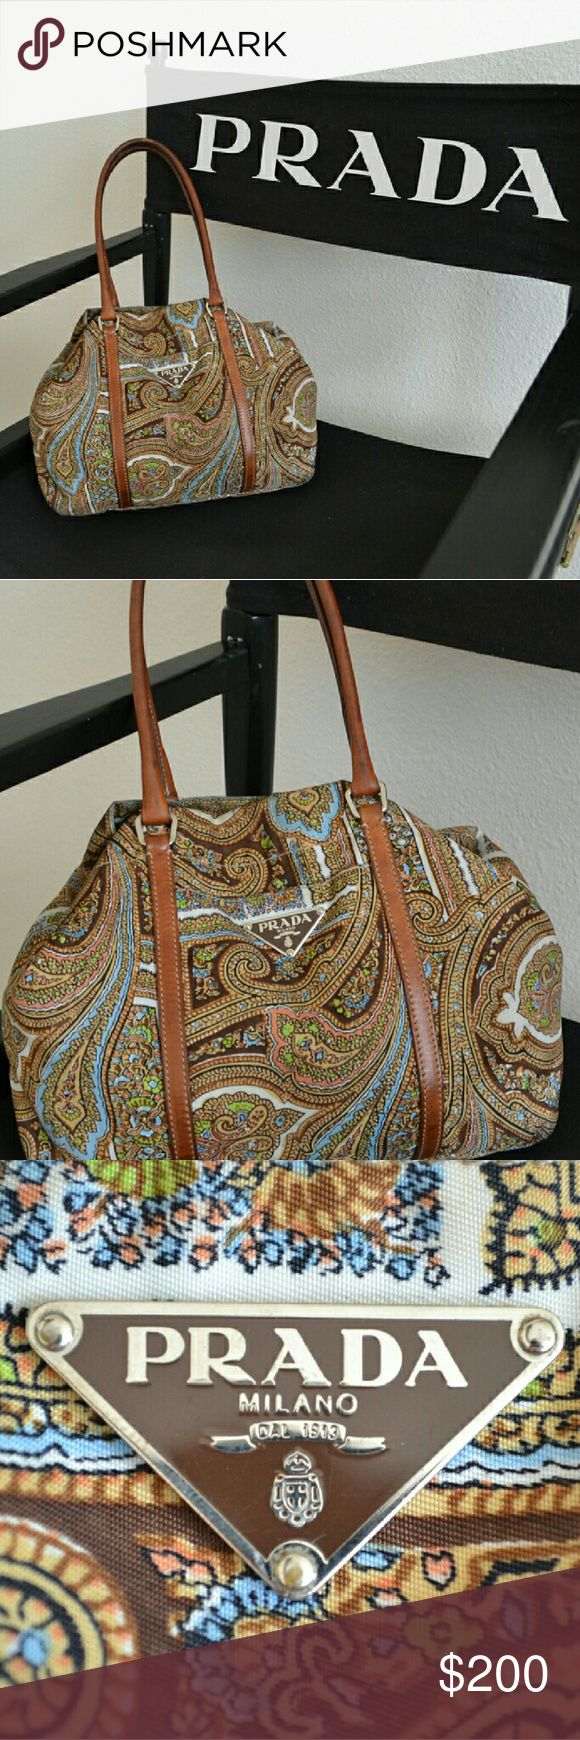 PRADA Tessuto Nylon Tote Paisley Fall Paisley Medium sized Prada Tessuto nylon tote. Rare fall paisley pattern with brown leather accents. Brown & Silver Prada insignia on front, Creme & Silver Prada insignia inside. Brown leather handles, unique Prada Silver Clasp, and silver colored studs on base of bag. Interior color is creme, with a single zipper pocket. 100% Authentic, purchased in Rome. This is a GENTLY USED item in Good Condition. A few pen marks on inside lining and other minor…